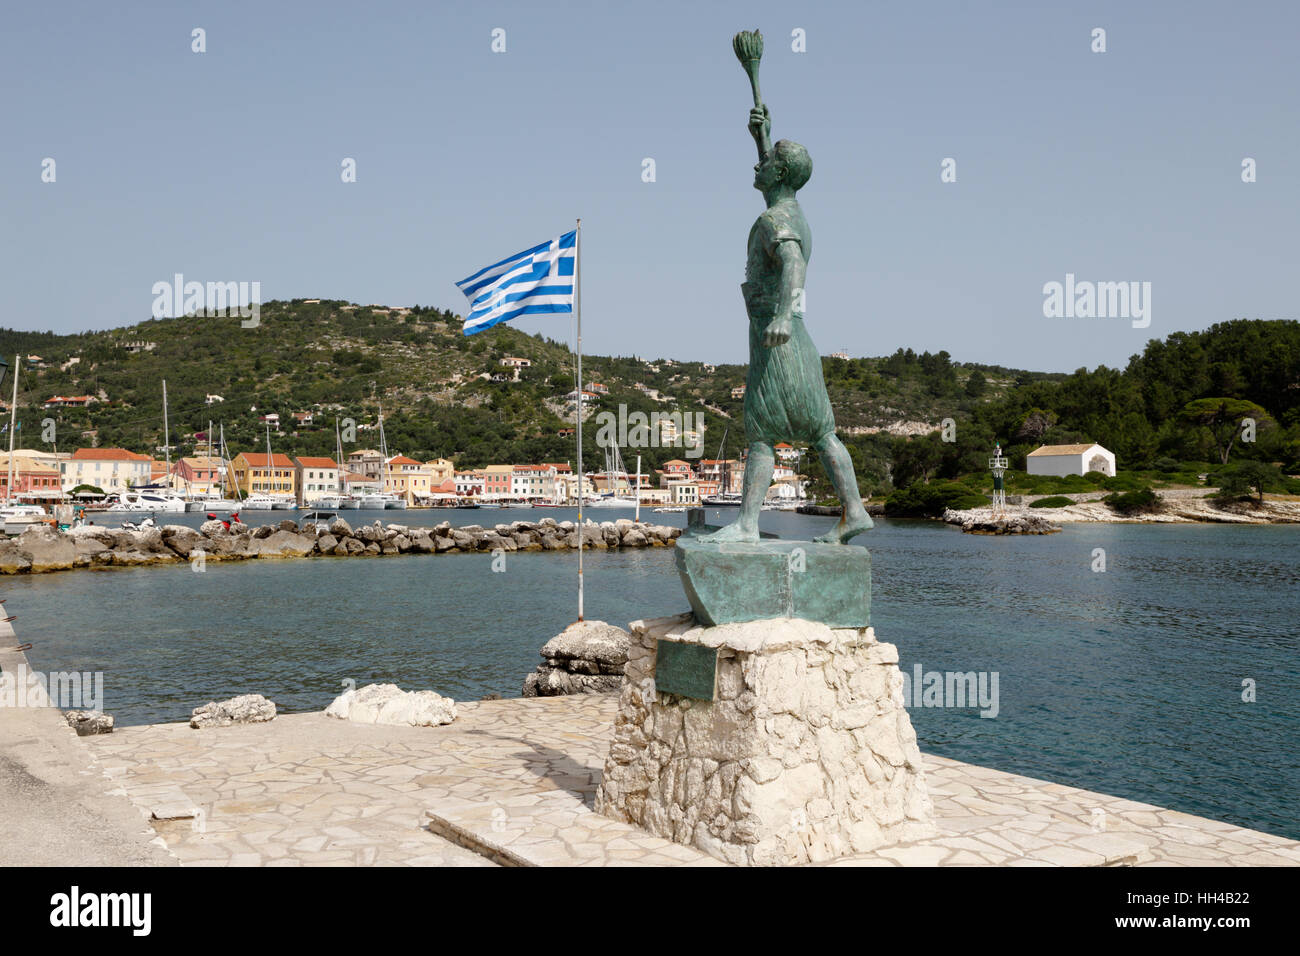 Harbour of Gaios town, Paxos, Ionian Islands, Greek Islands, Greece, Europe - Stock Image